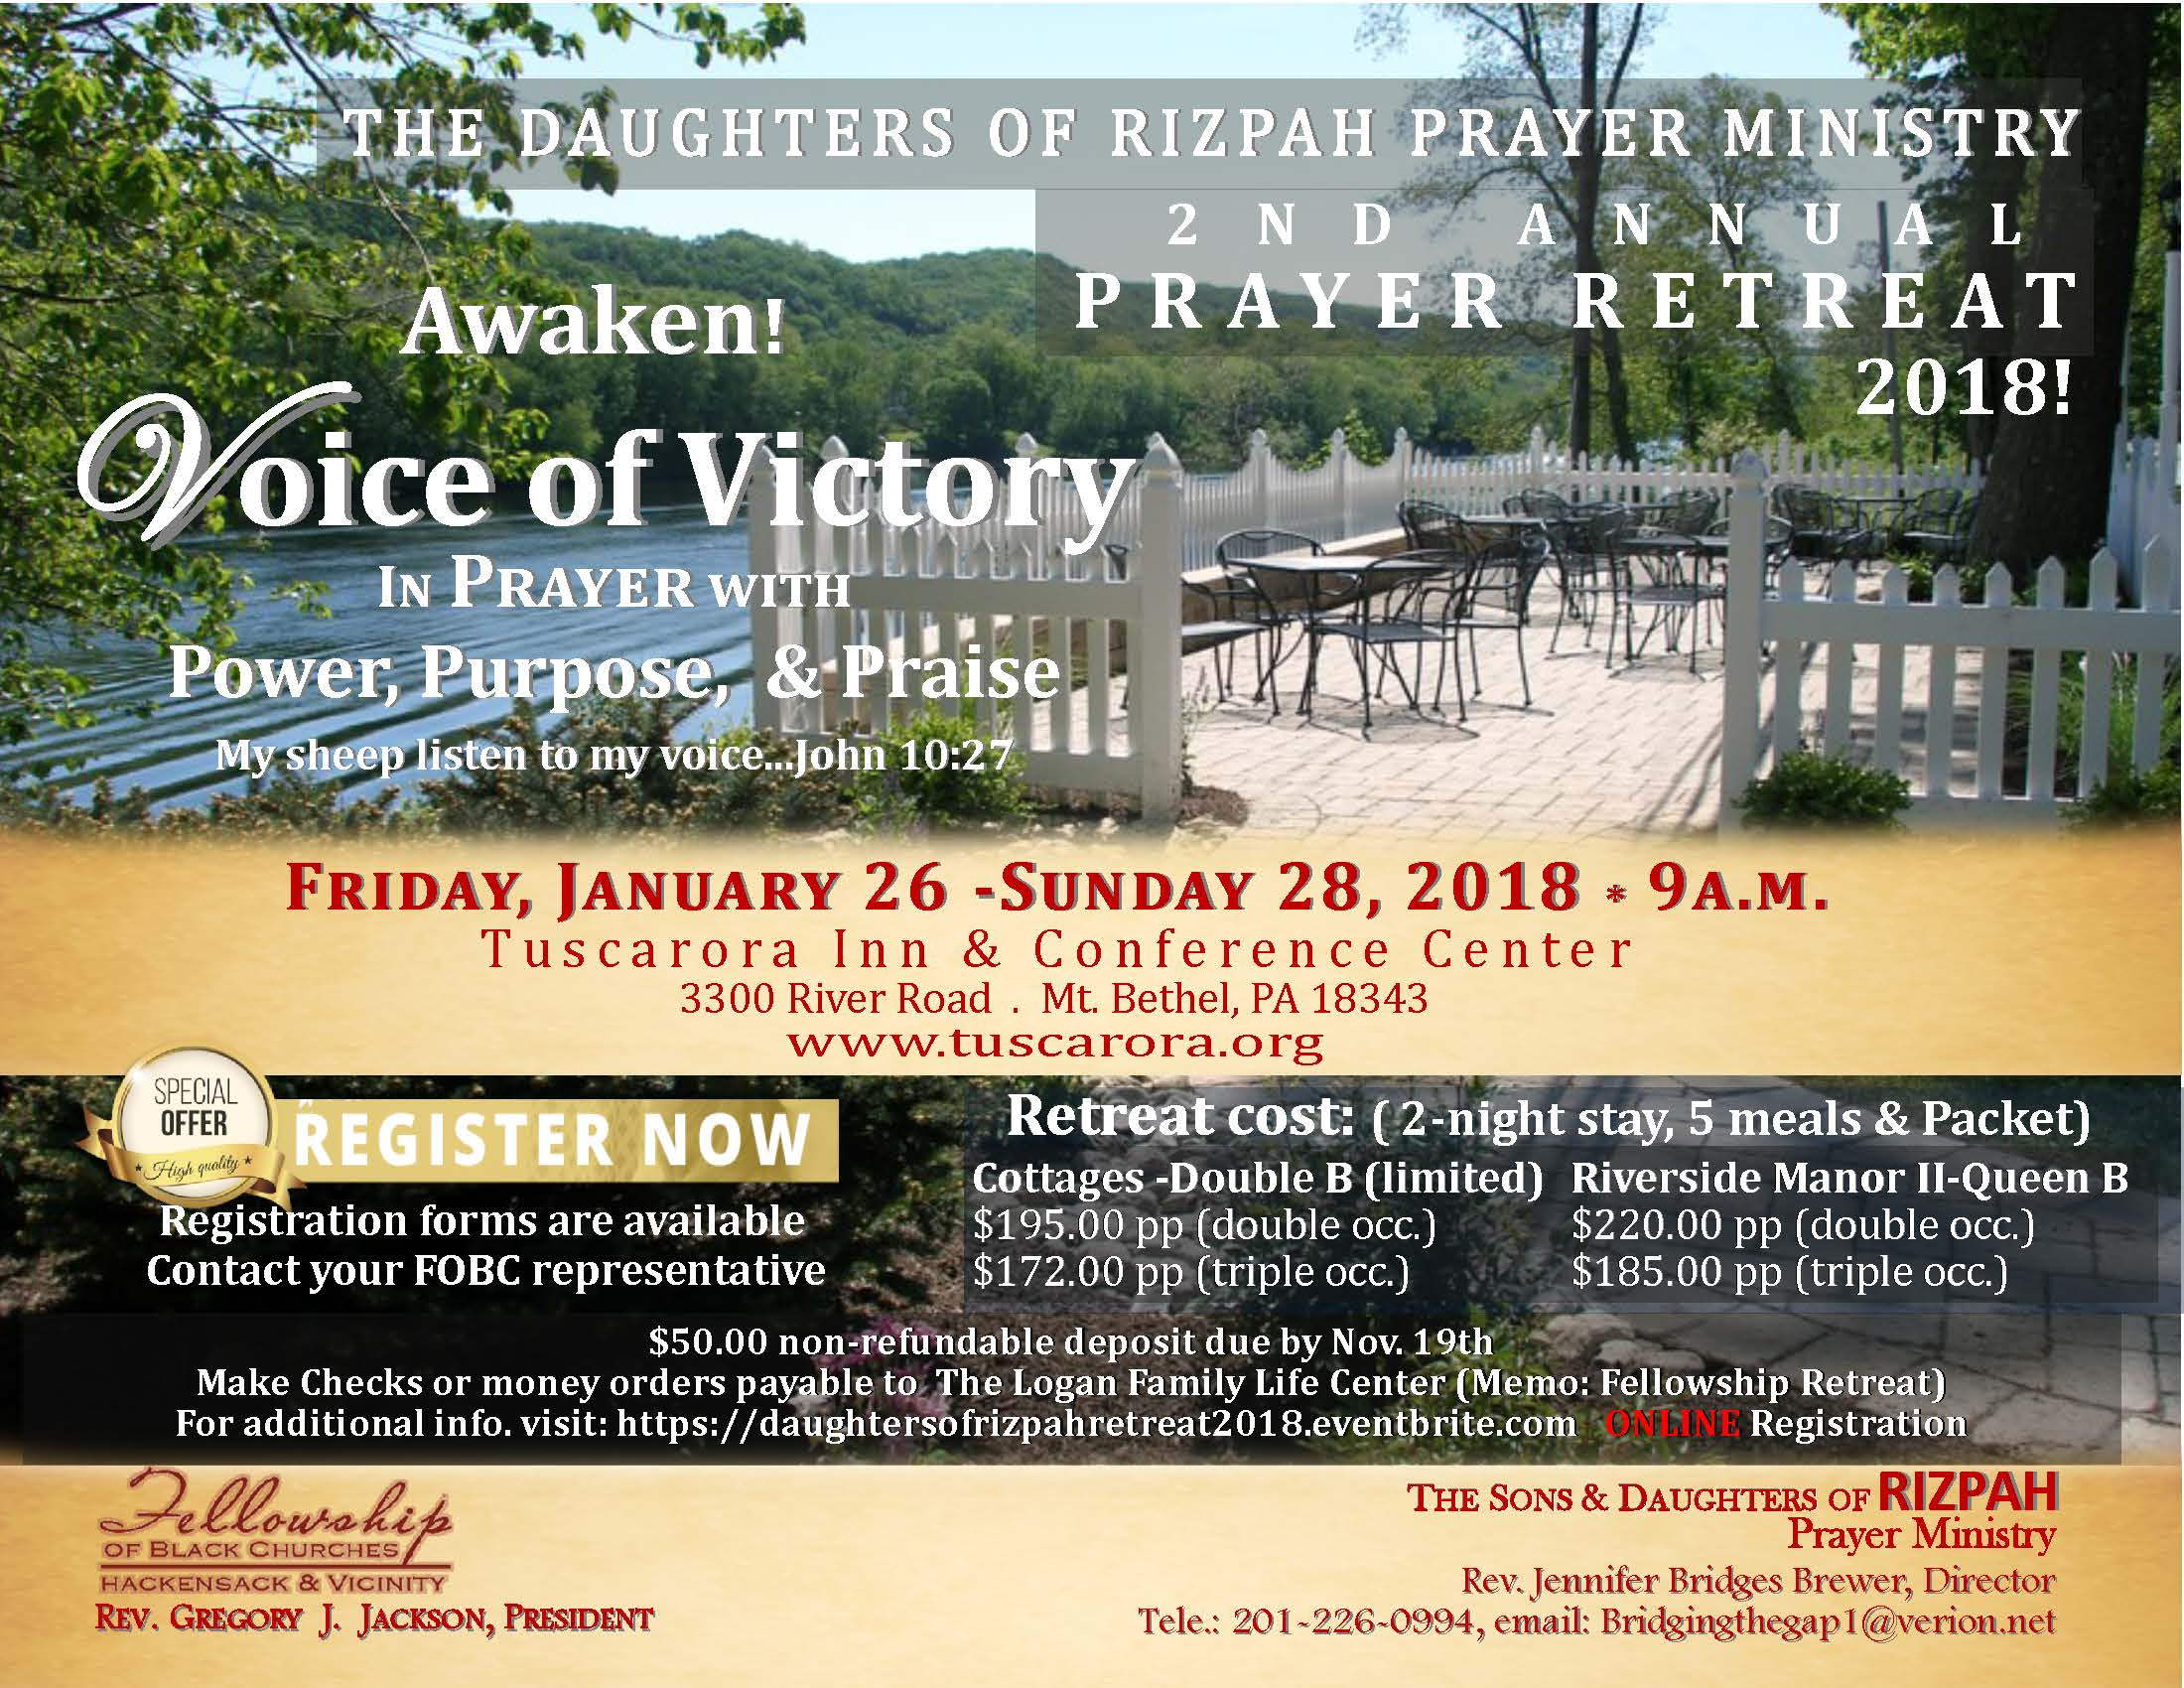 2018-Daughters_of_Rizpah_Retreat-flier-Oct_30.jpg